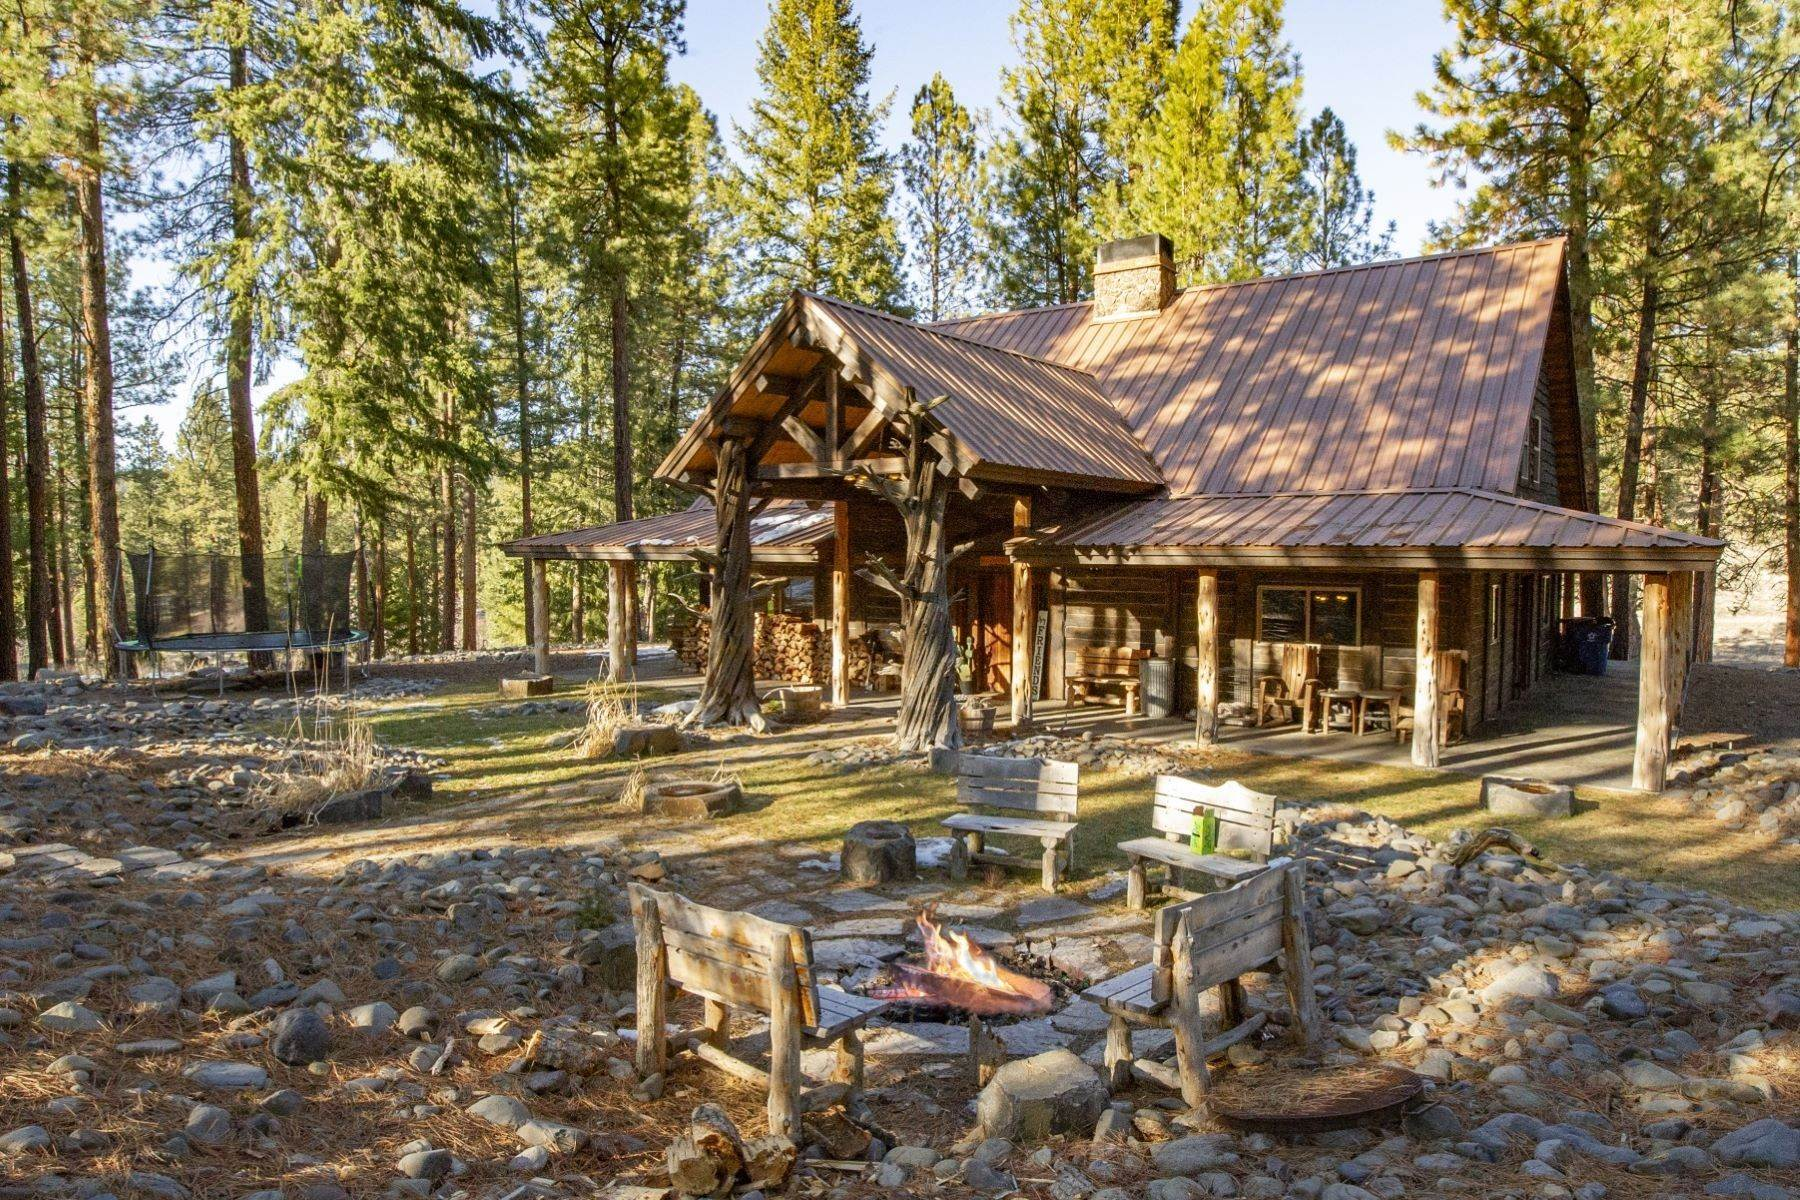 Property for Sale at 27280 NE Old Wolf Creek Road Prineville, OR 97754 27280 NE Old Wolf Creek Road Prineville, Oregon 97754 United States